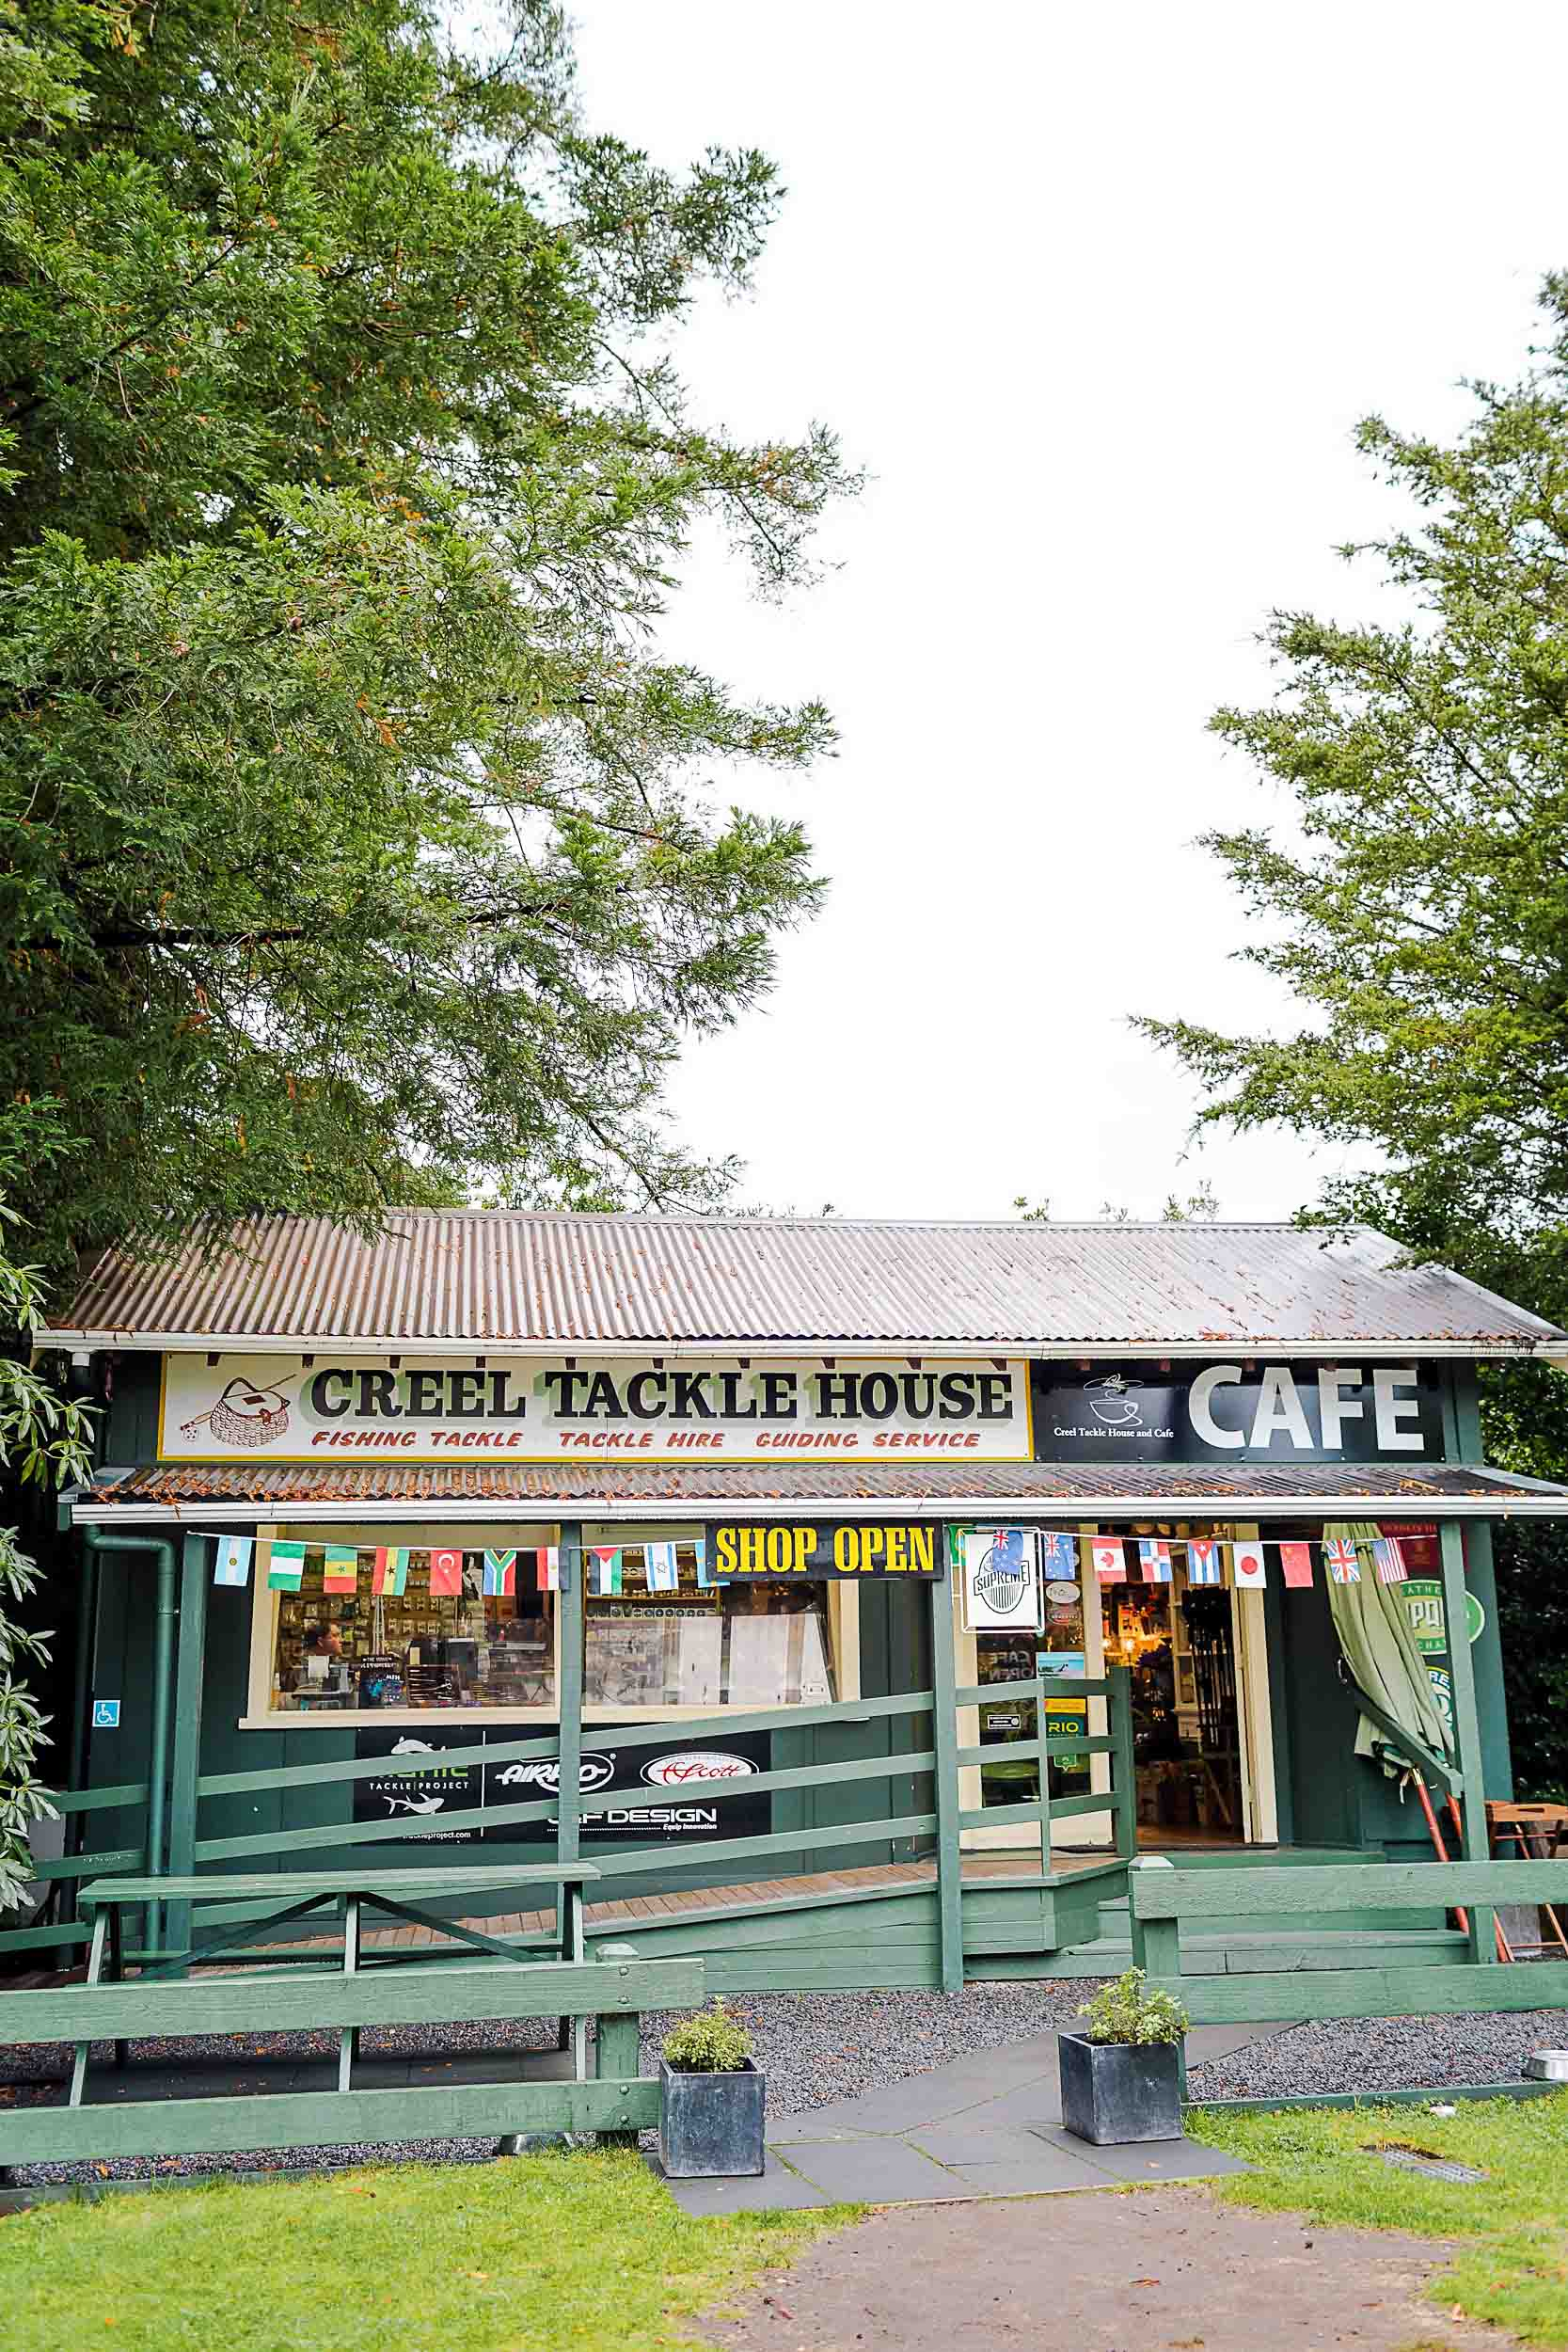 Creel Tackle House and Cafe is a great place for breakfast in Turani, New Zealand